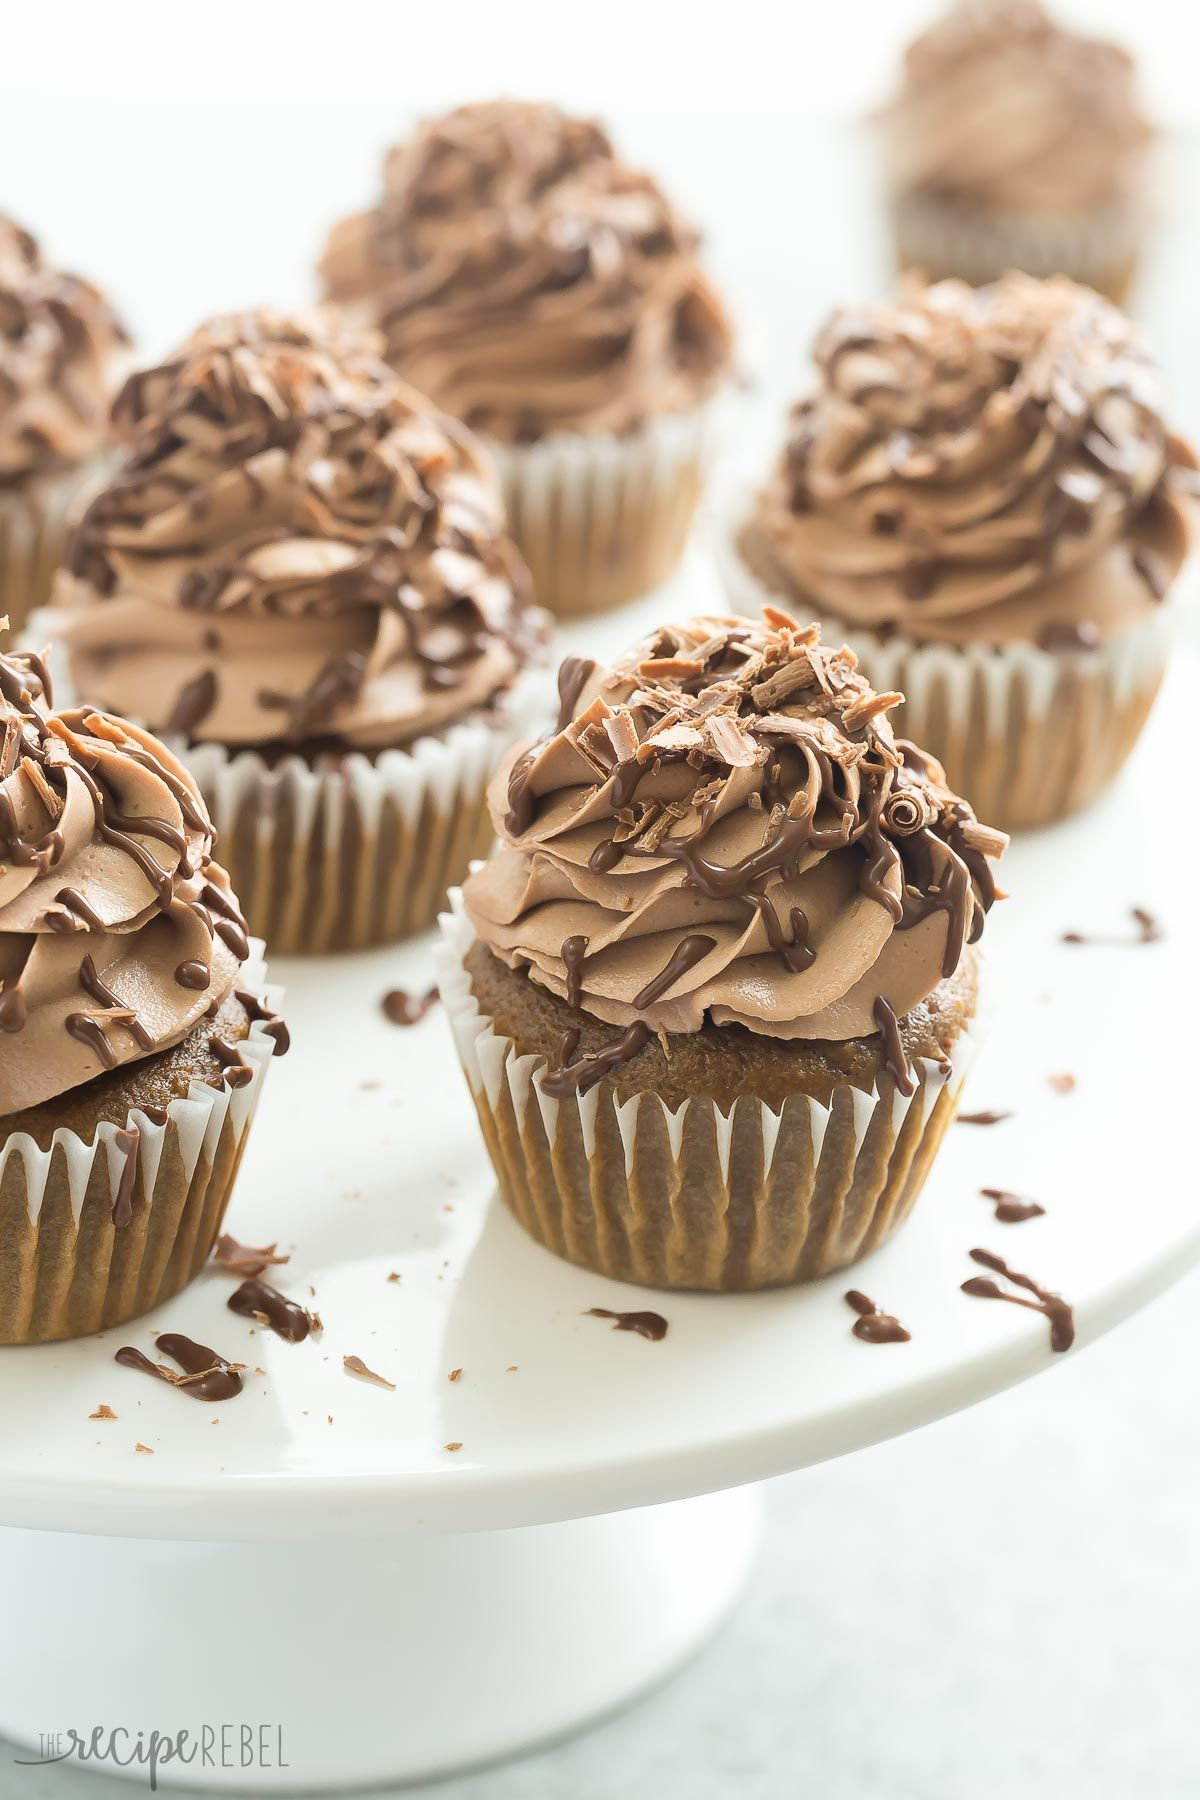 These Mocha Nutella Cupcakes are the perfect way to get